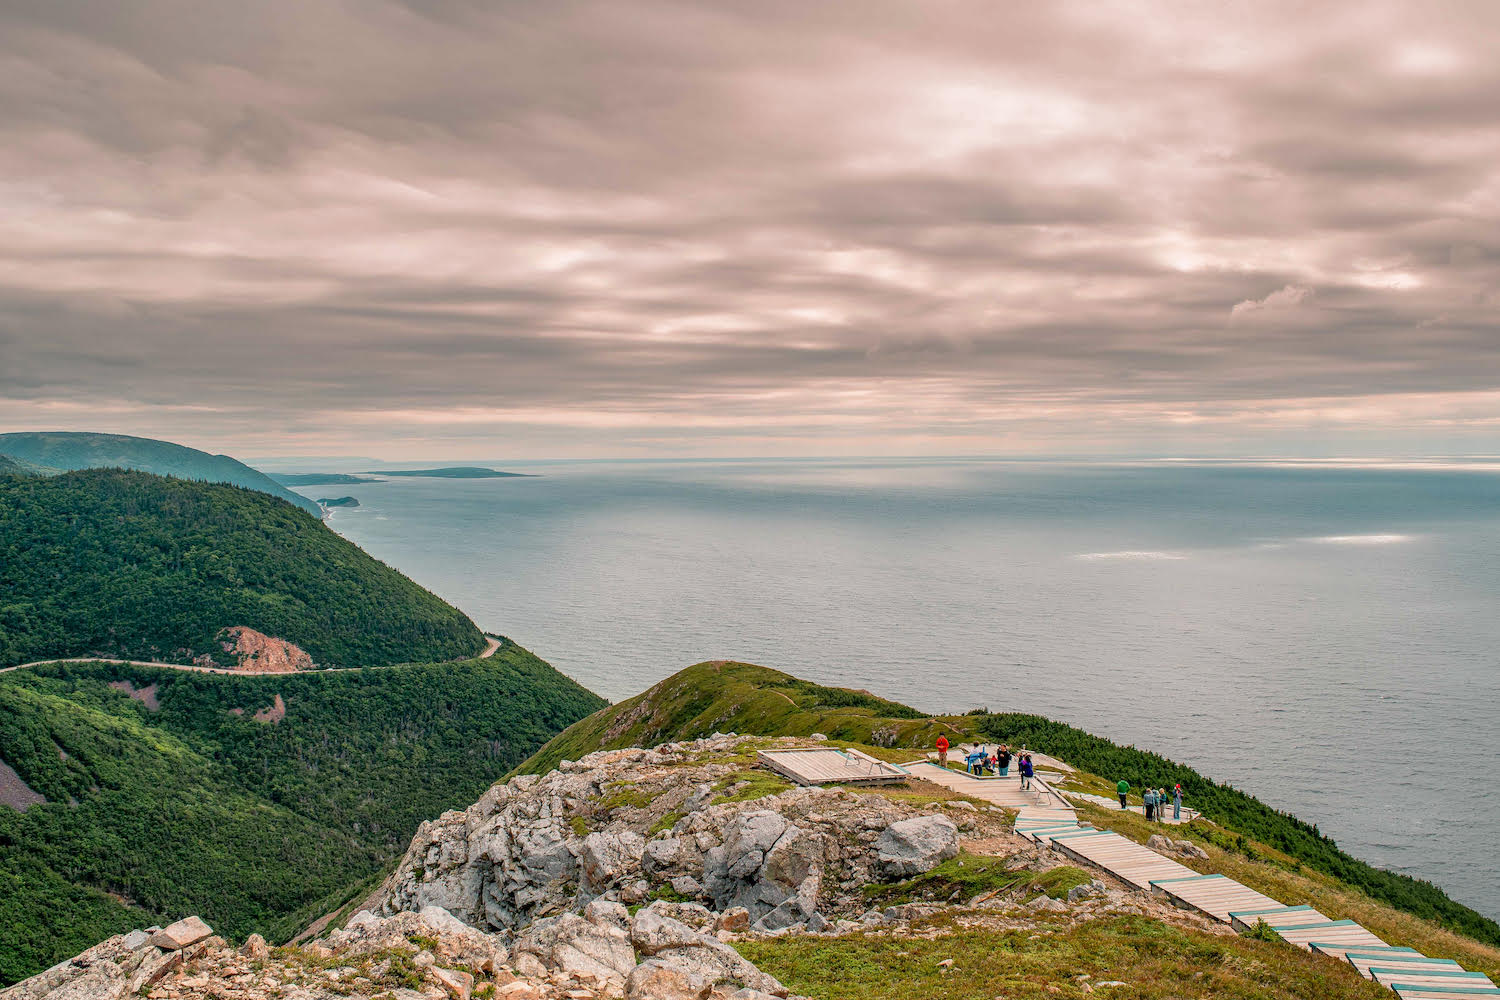 Sky Trail Cape Breton hiking Nova Scotia